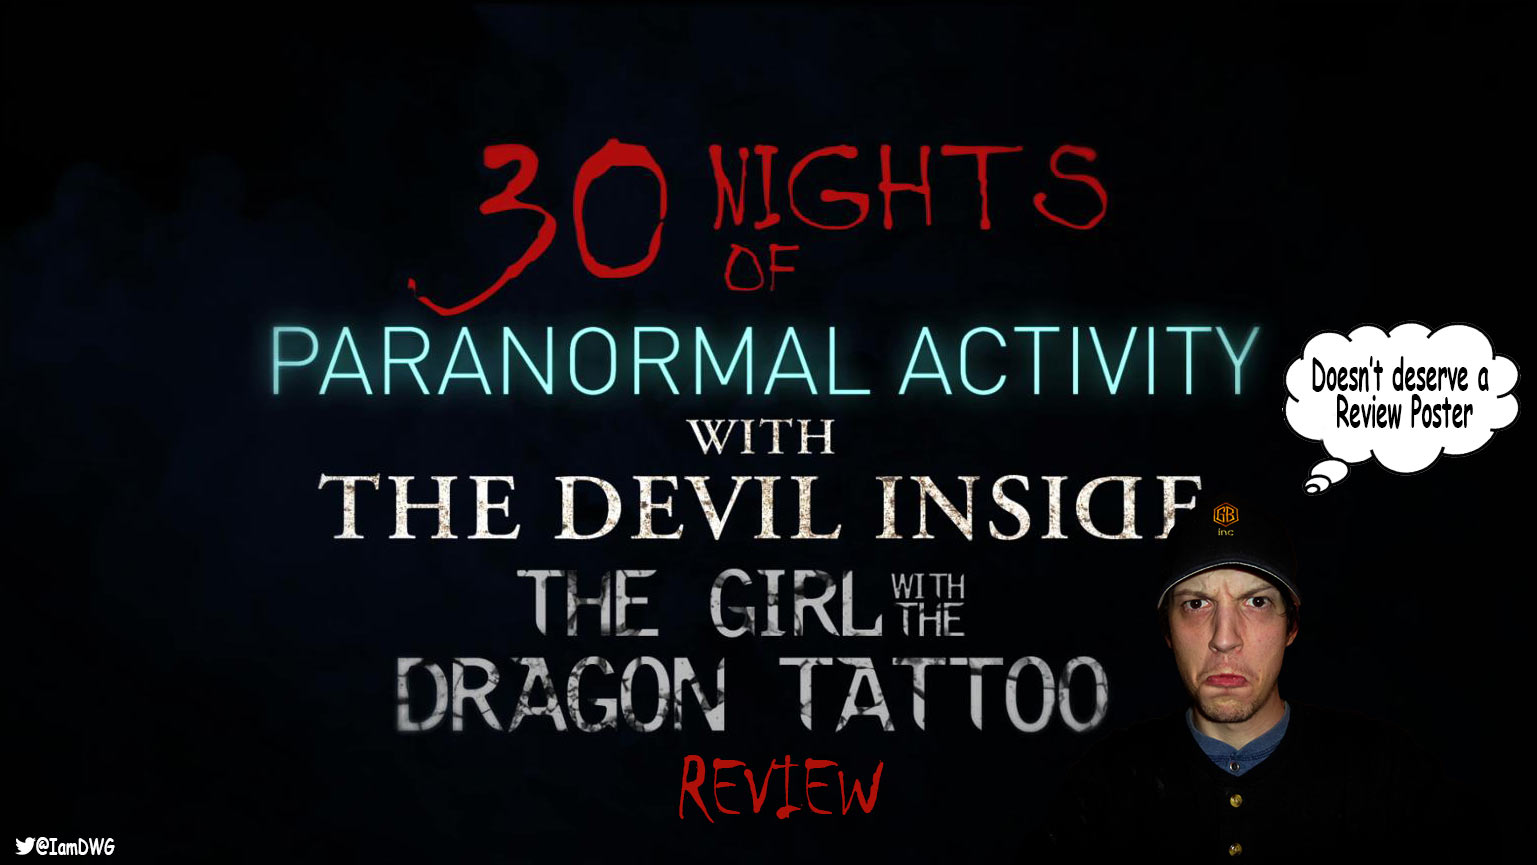 with the Devil Inside the Girl with the Dragon Tattoo (DVD) | KDVR.com